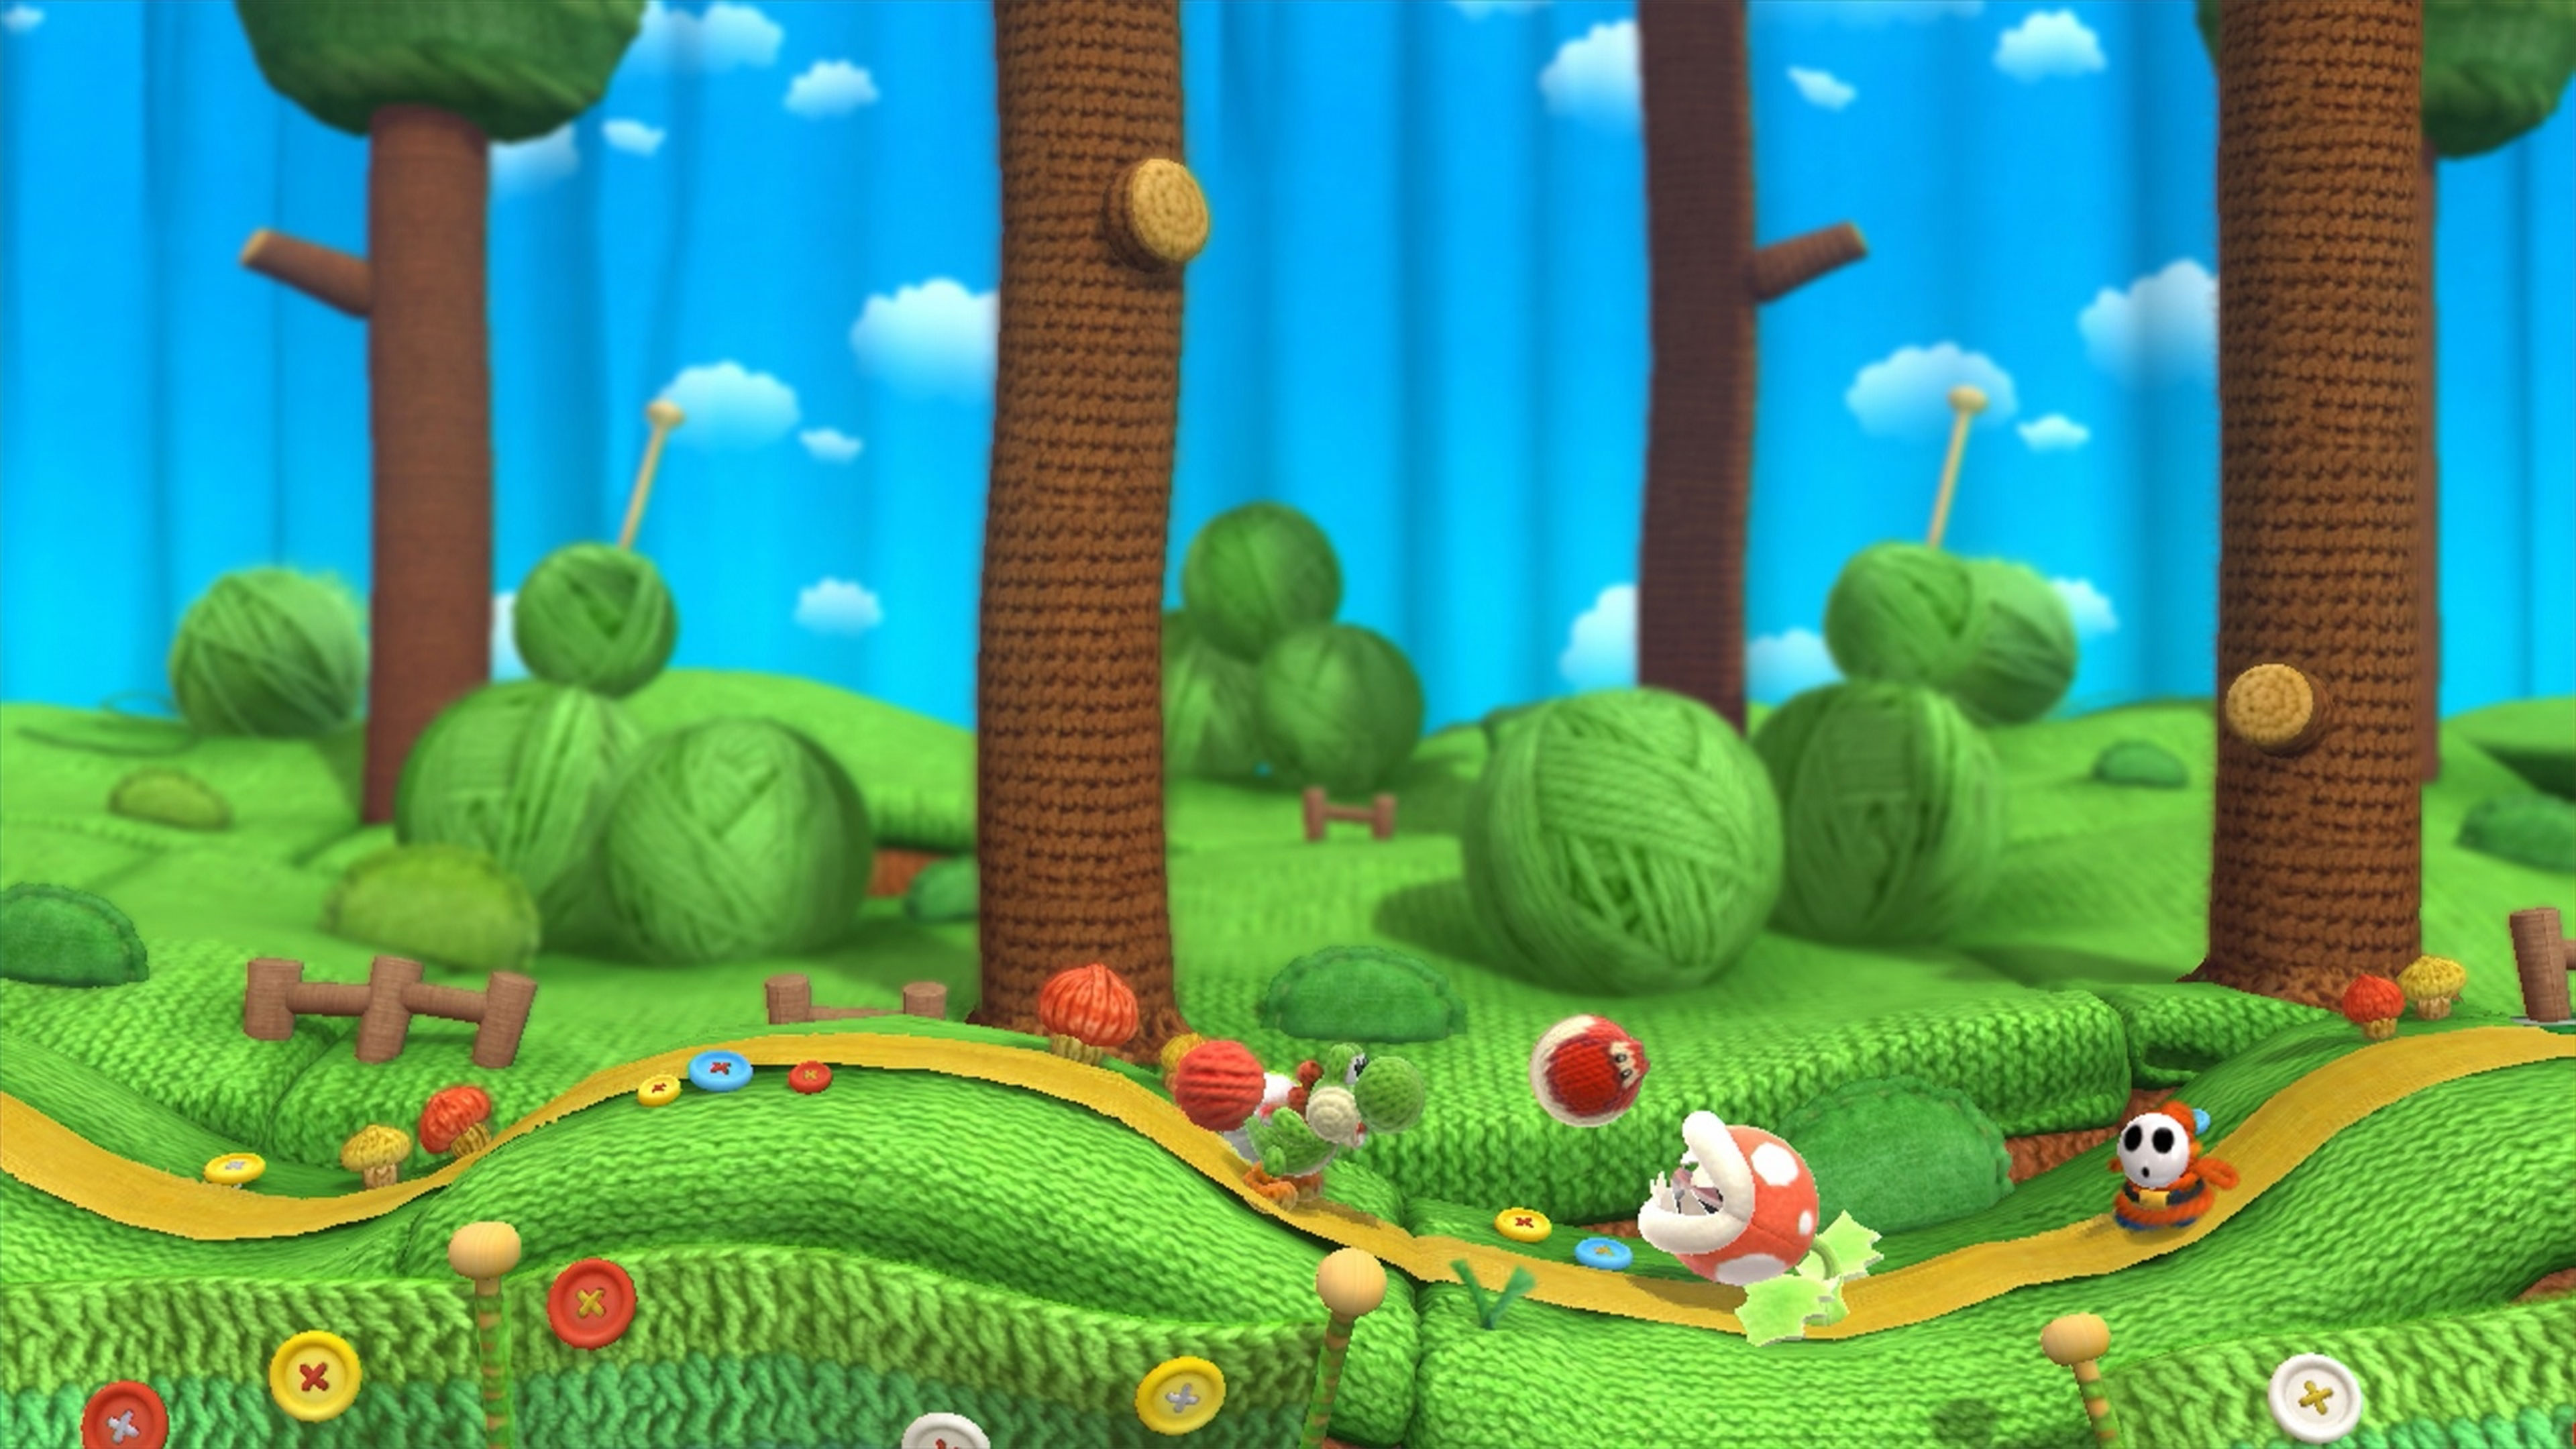 yoshis crafted world widescreen wallpaper 67361